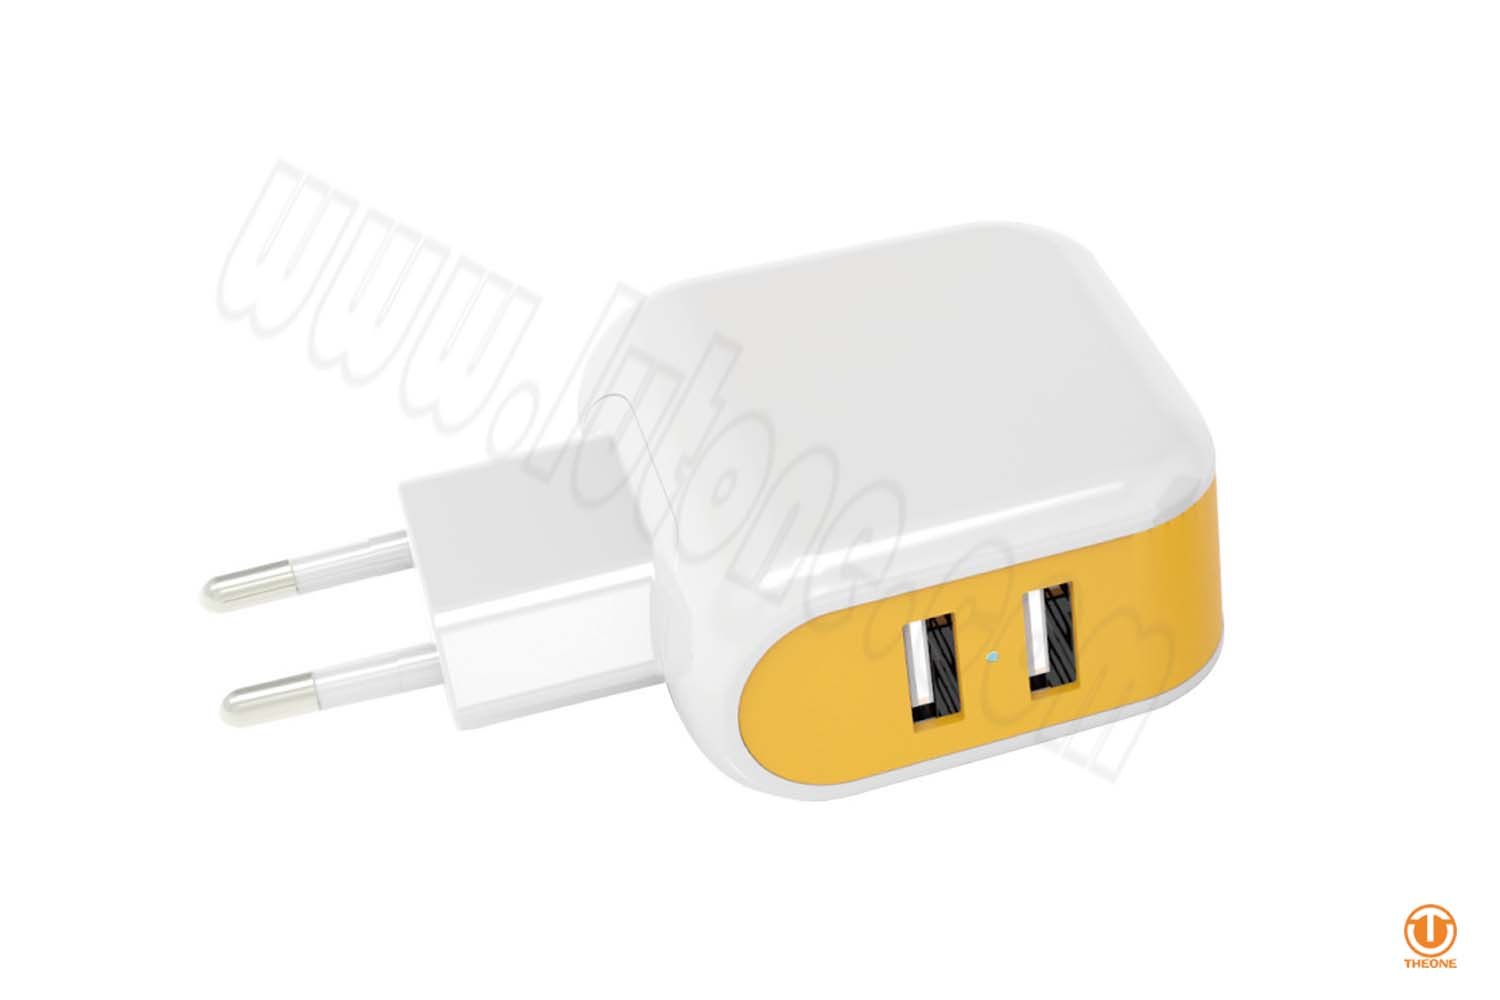 tc04b2-1 dual usb wall charger